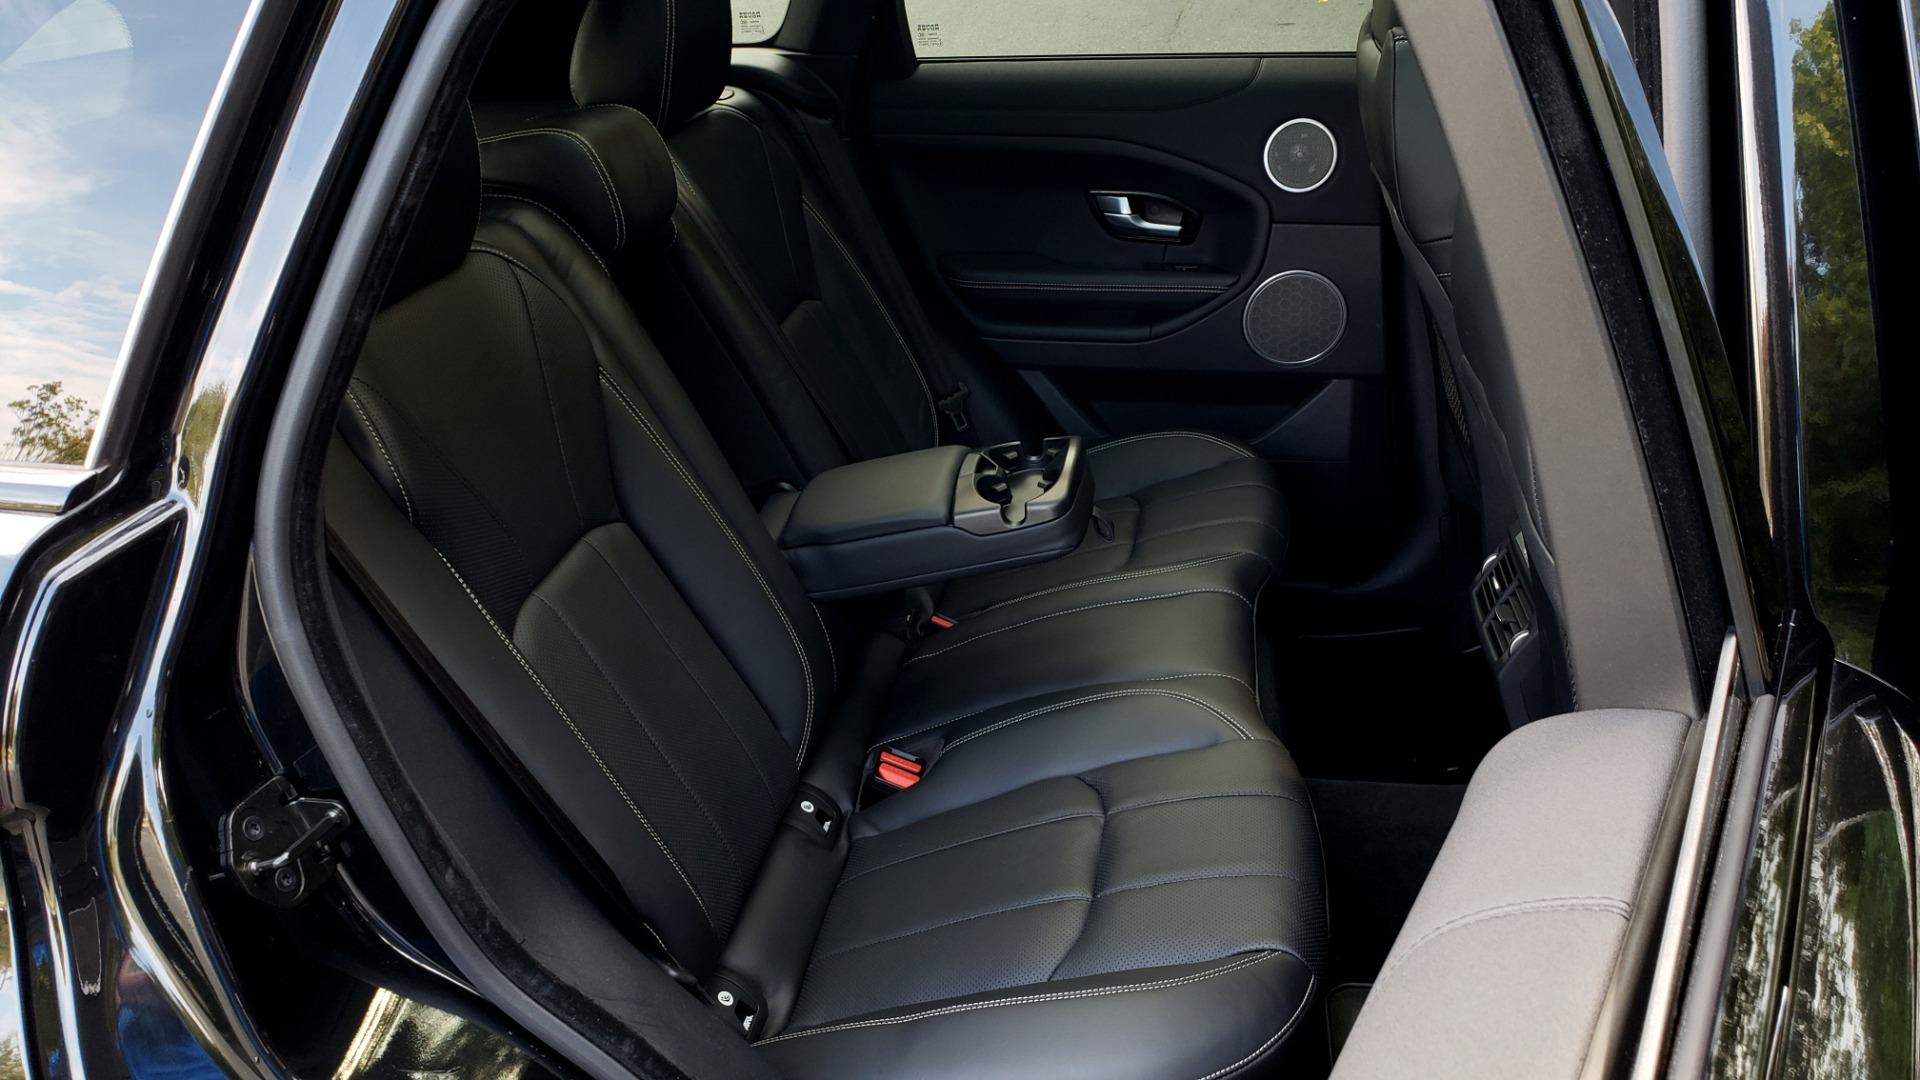 Used 2016 Land Rover RANGE ROVER EVOQUE HSE / AWD / NAV / MERIDIAN / PANO-ROOF / REARVIEW for sale Sold at Formula Imports in Charlotte NC 28227 72